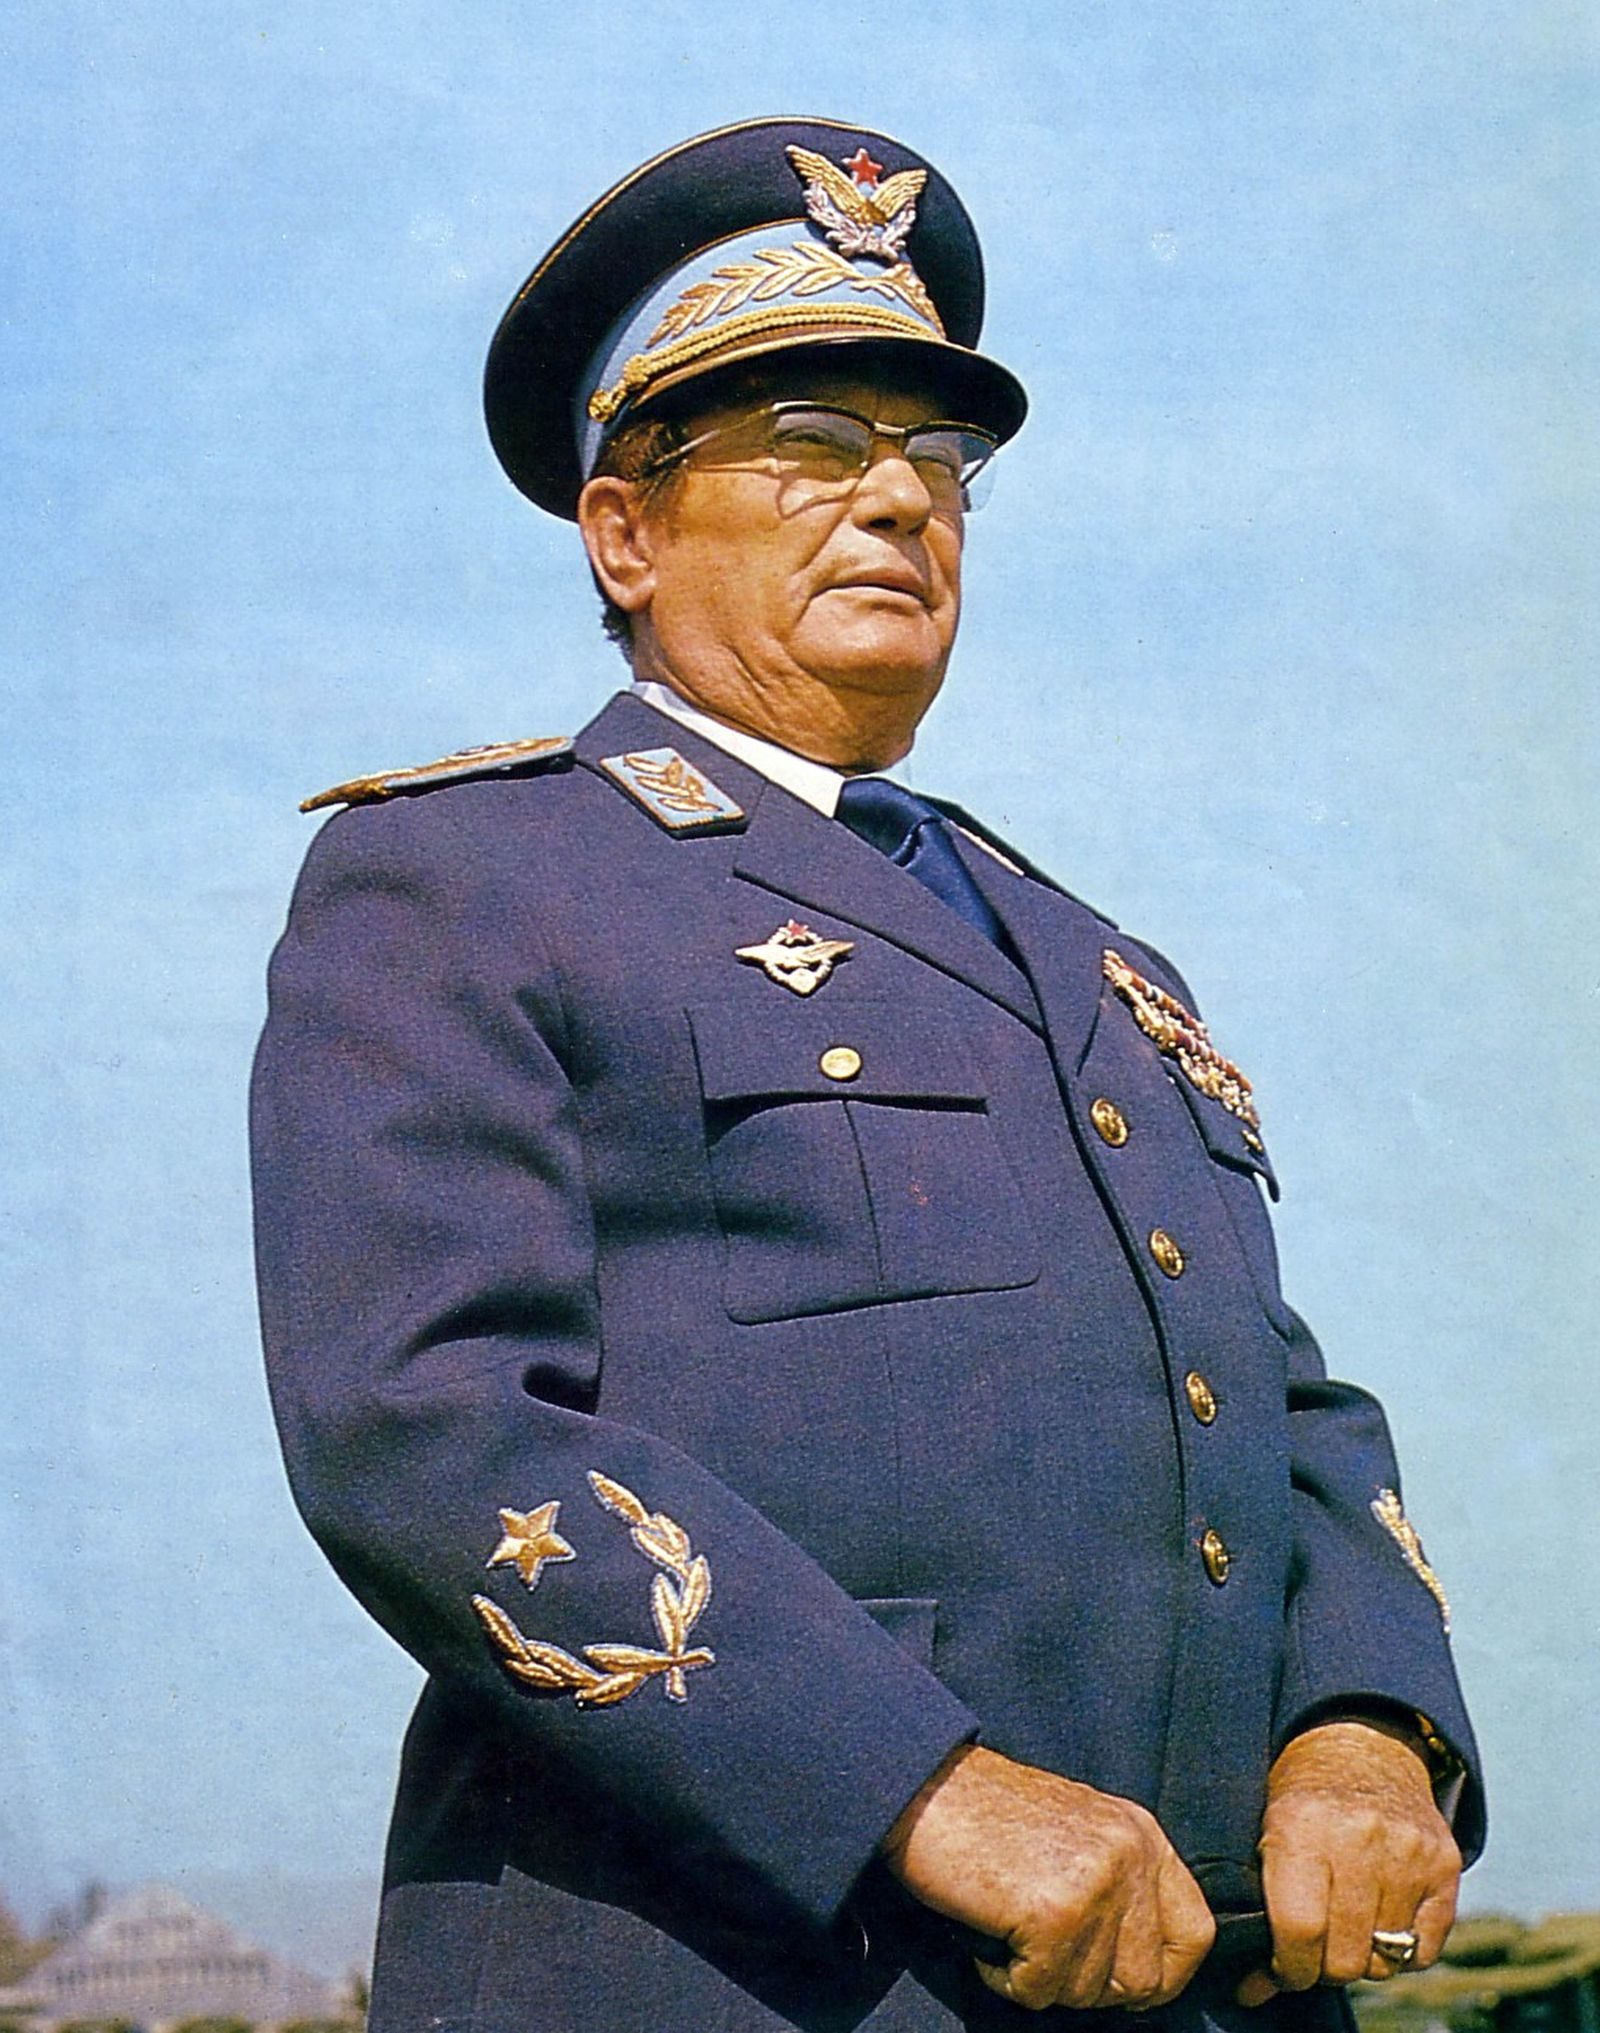 Josip Broz Tito (1892 - 1980) Yugoslav revolutionary and statesman. Secretary-General (later President) of the Communist Party of Yugoslavia (1939-80), led the WWII Yugoslav resistance movement, the Yugoslav Partisans (1941-45). Prime Minister (1945-53) a